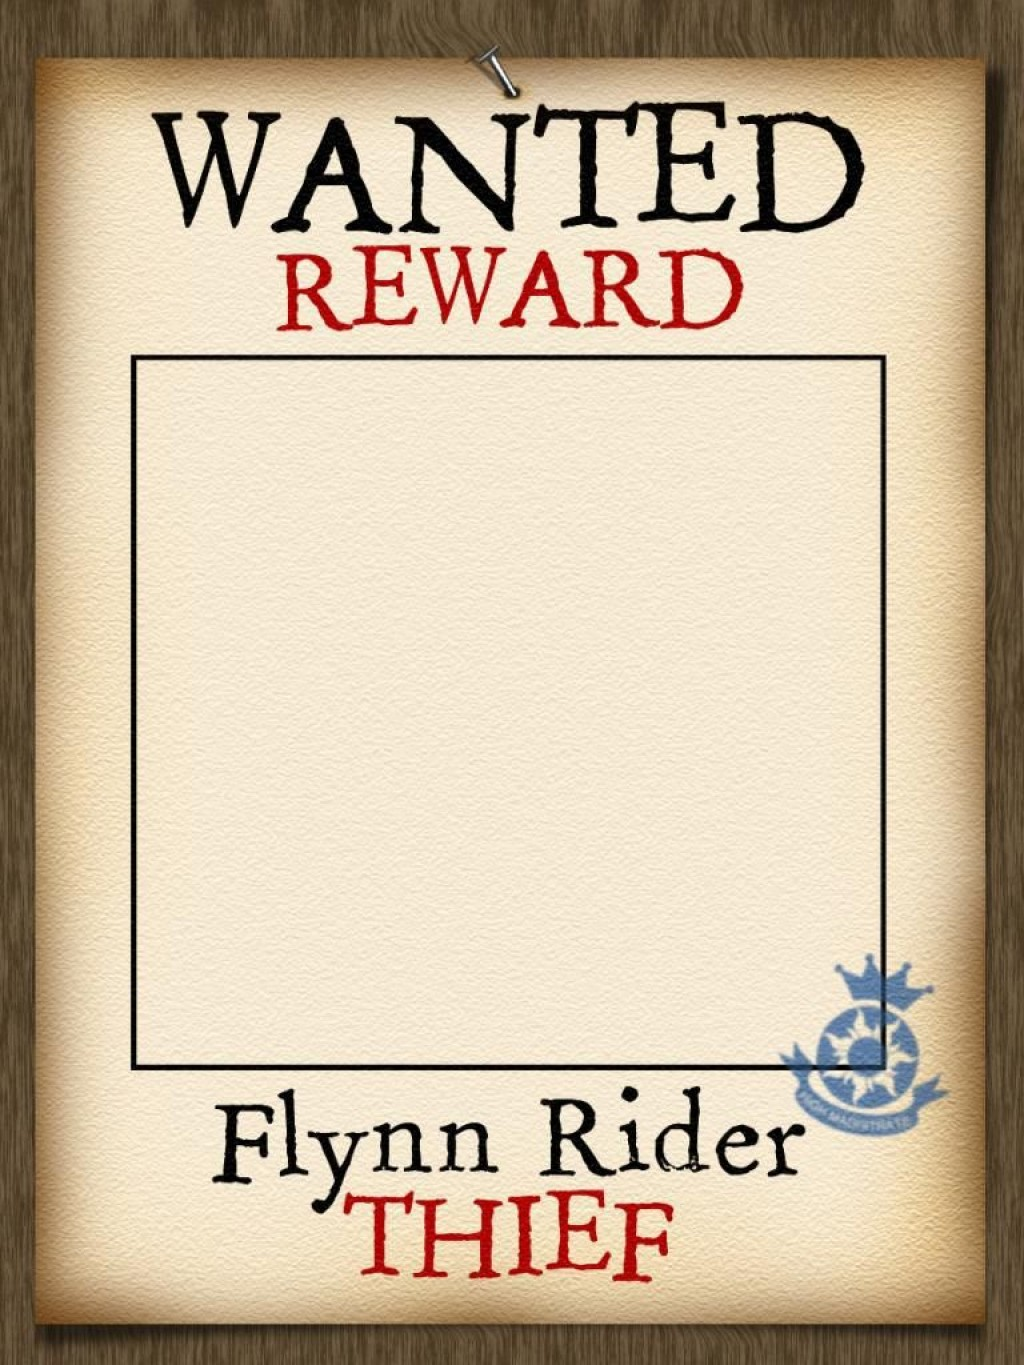 002 Magnificent Wanted Poster Template Pdf Sample  Free CharacterLarge